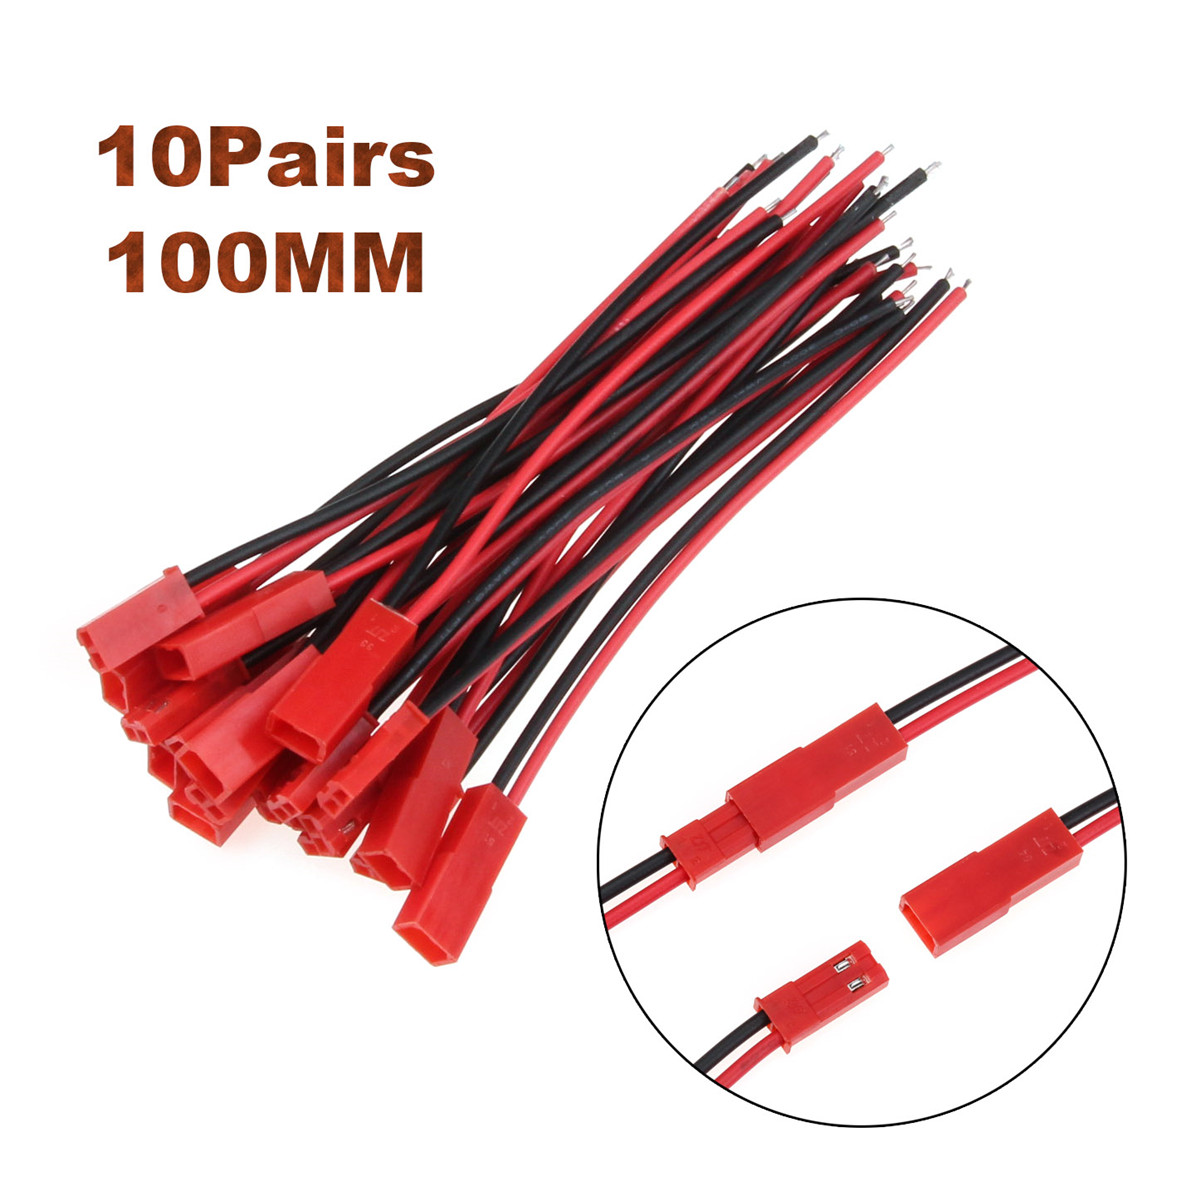 <font><b>2</b></font>/10 Pairs 100mm 10cm Male Female <font><b>2</b></font>-<font><b>Pin</b></font> Connector <font><b>JST</b></font> Plug <font><b>Cable</b></font> For RC BEC Battery Helicopter DIY FPV Drone Quadcopter image